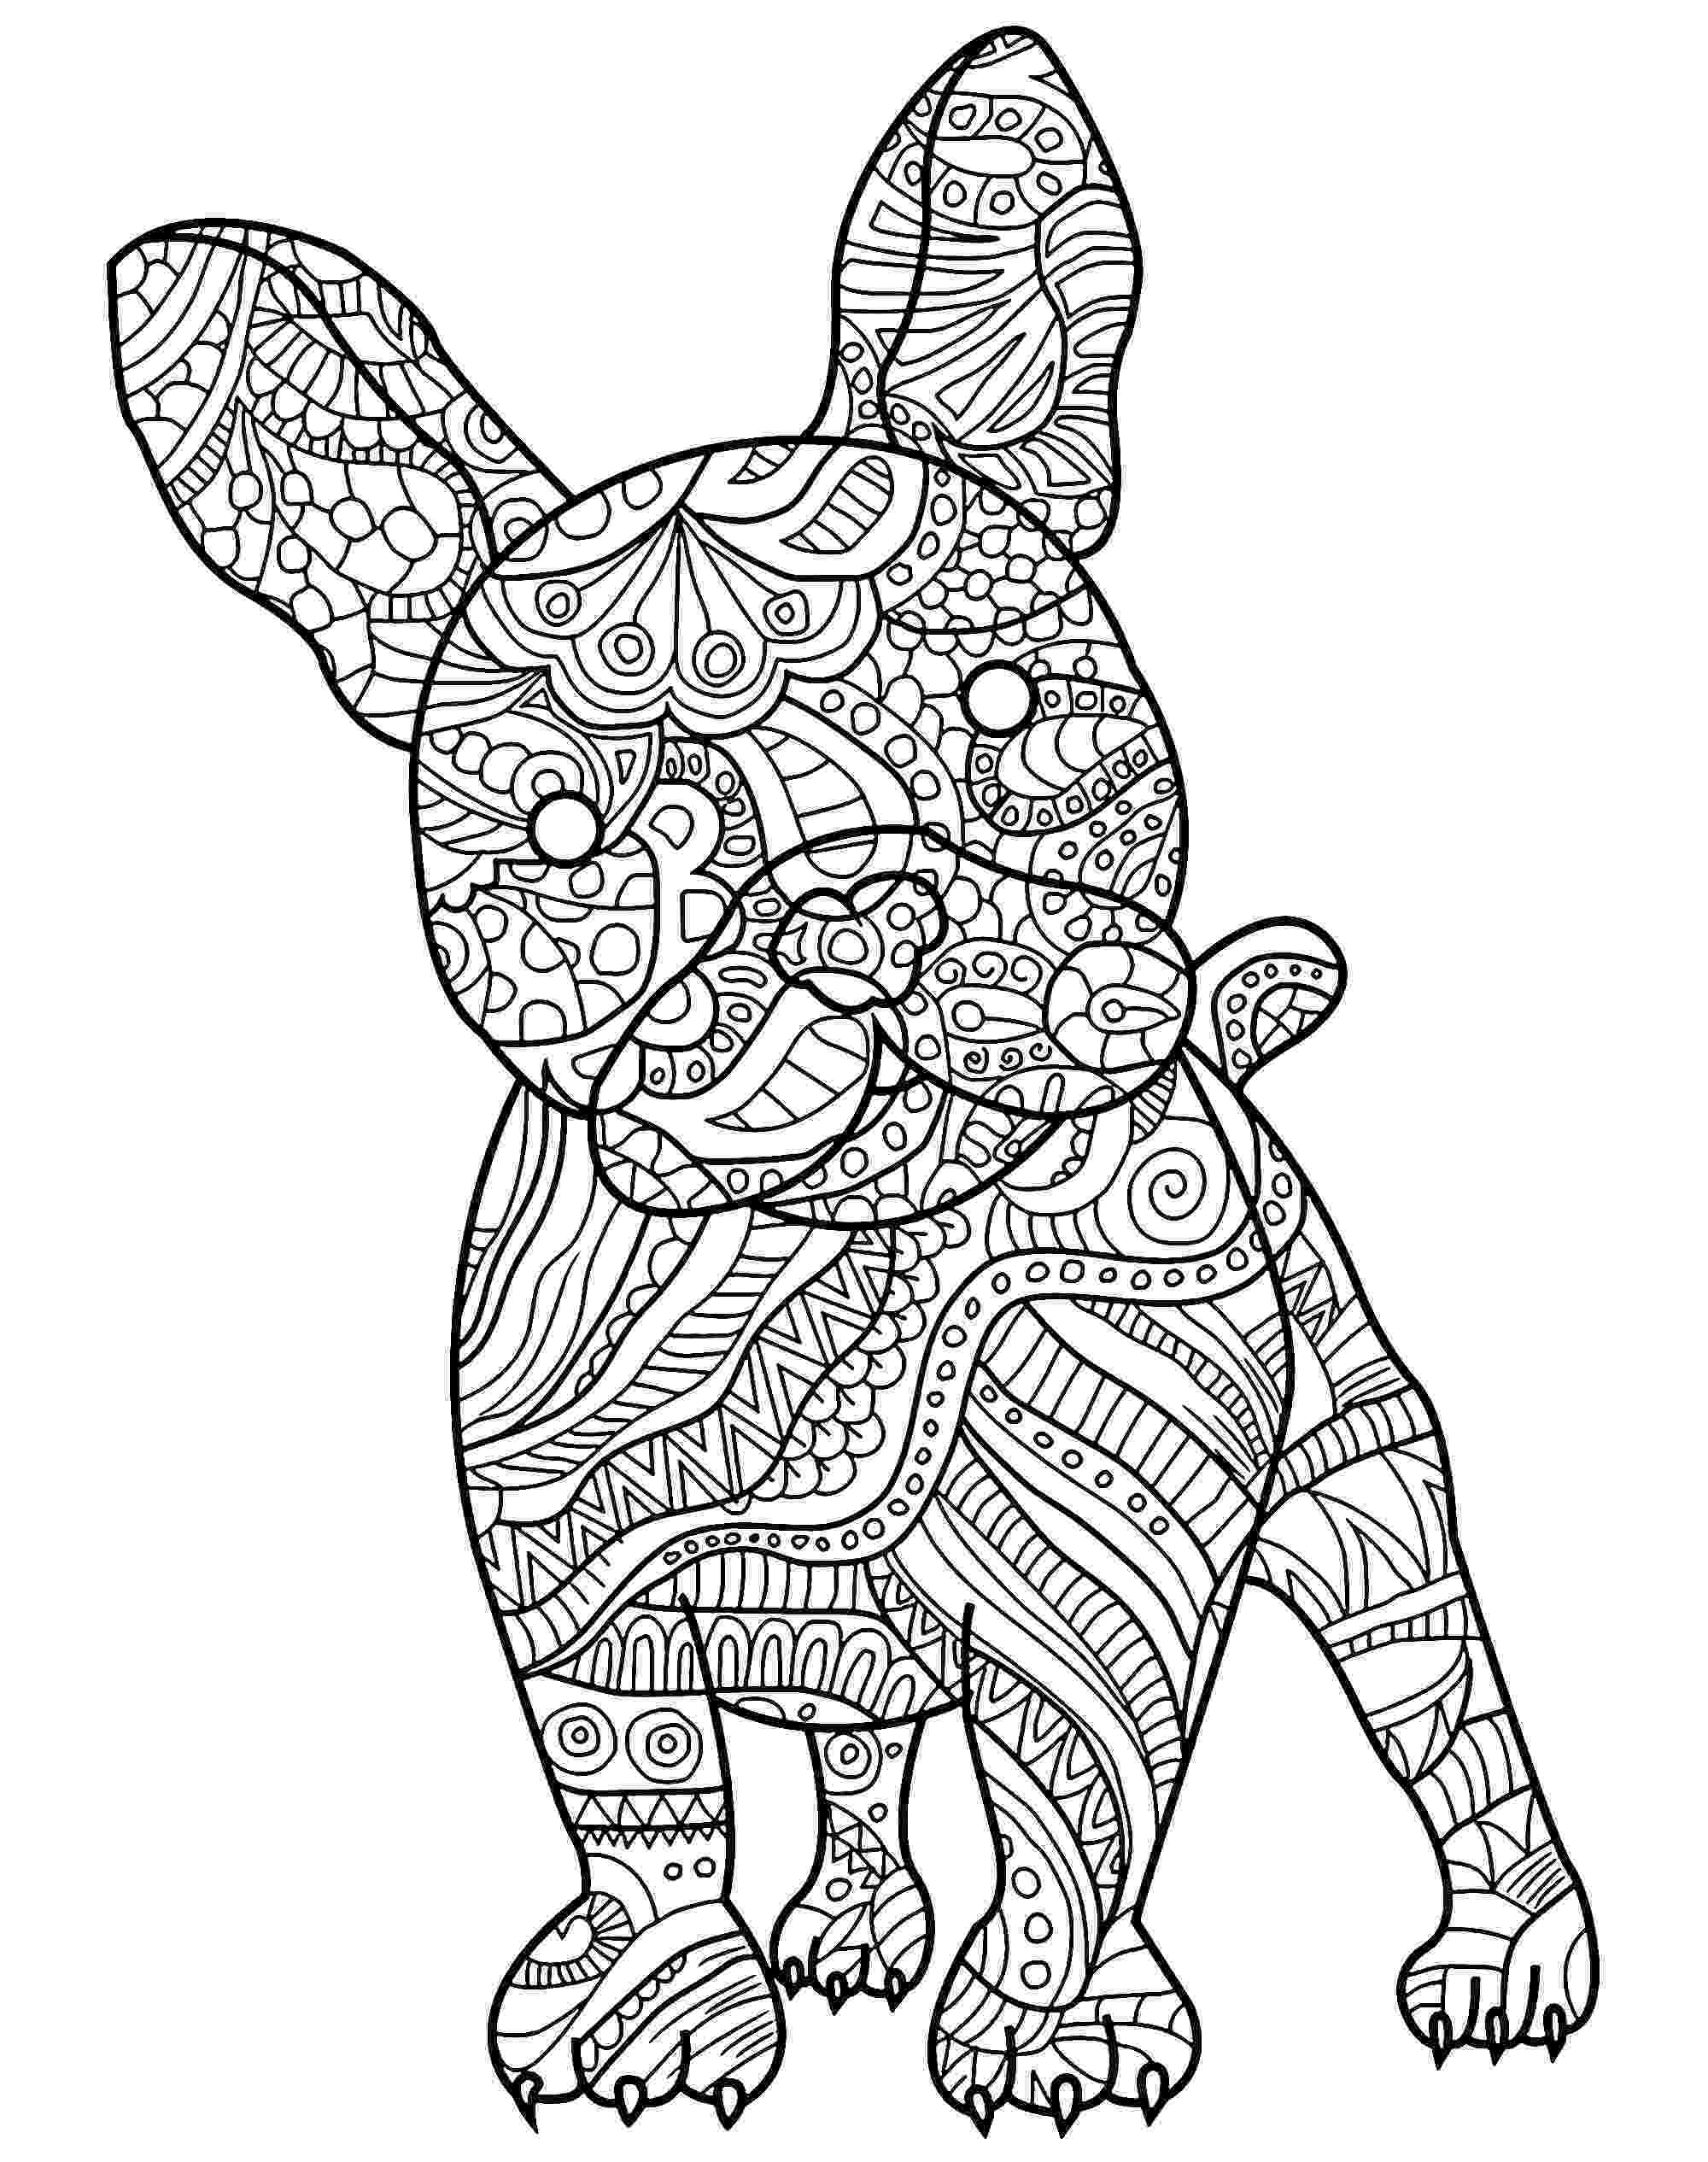 colouring pages of a dog free printable dog coloring pages for kids colouring dog a of pages